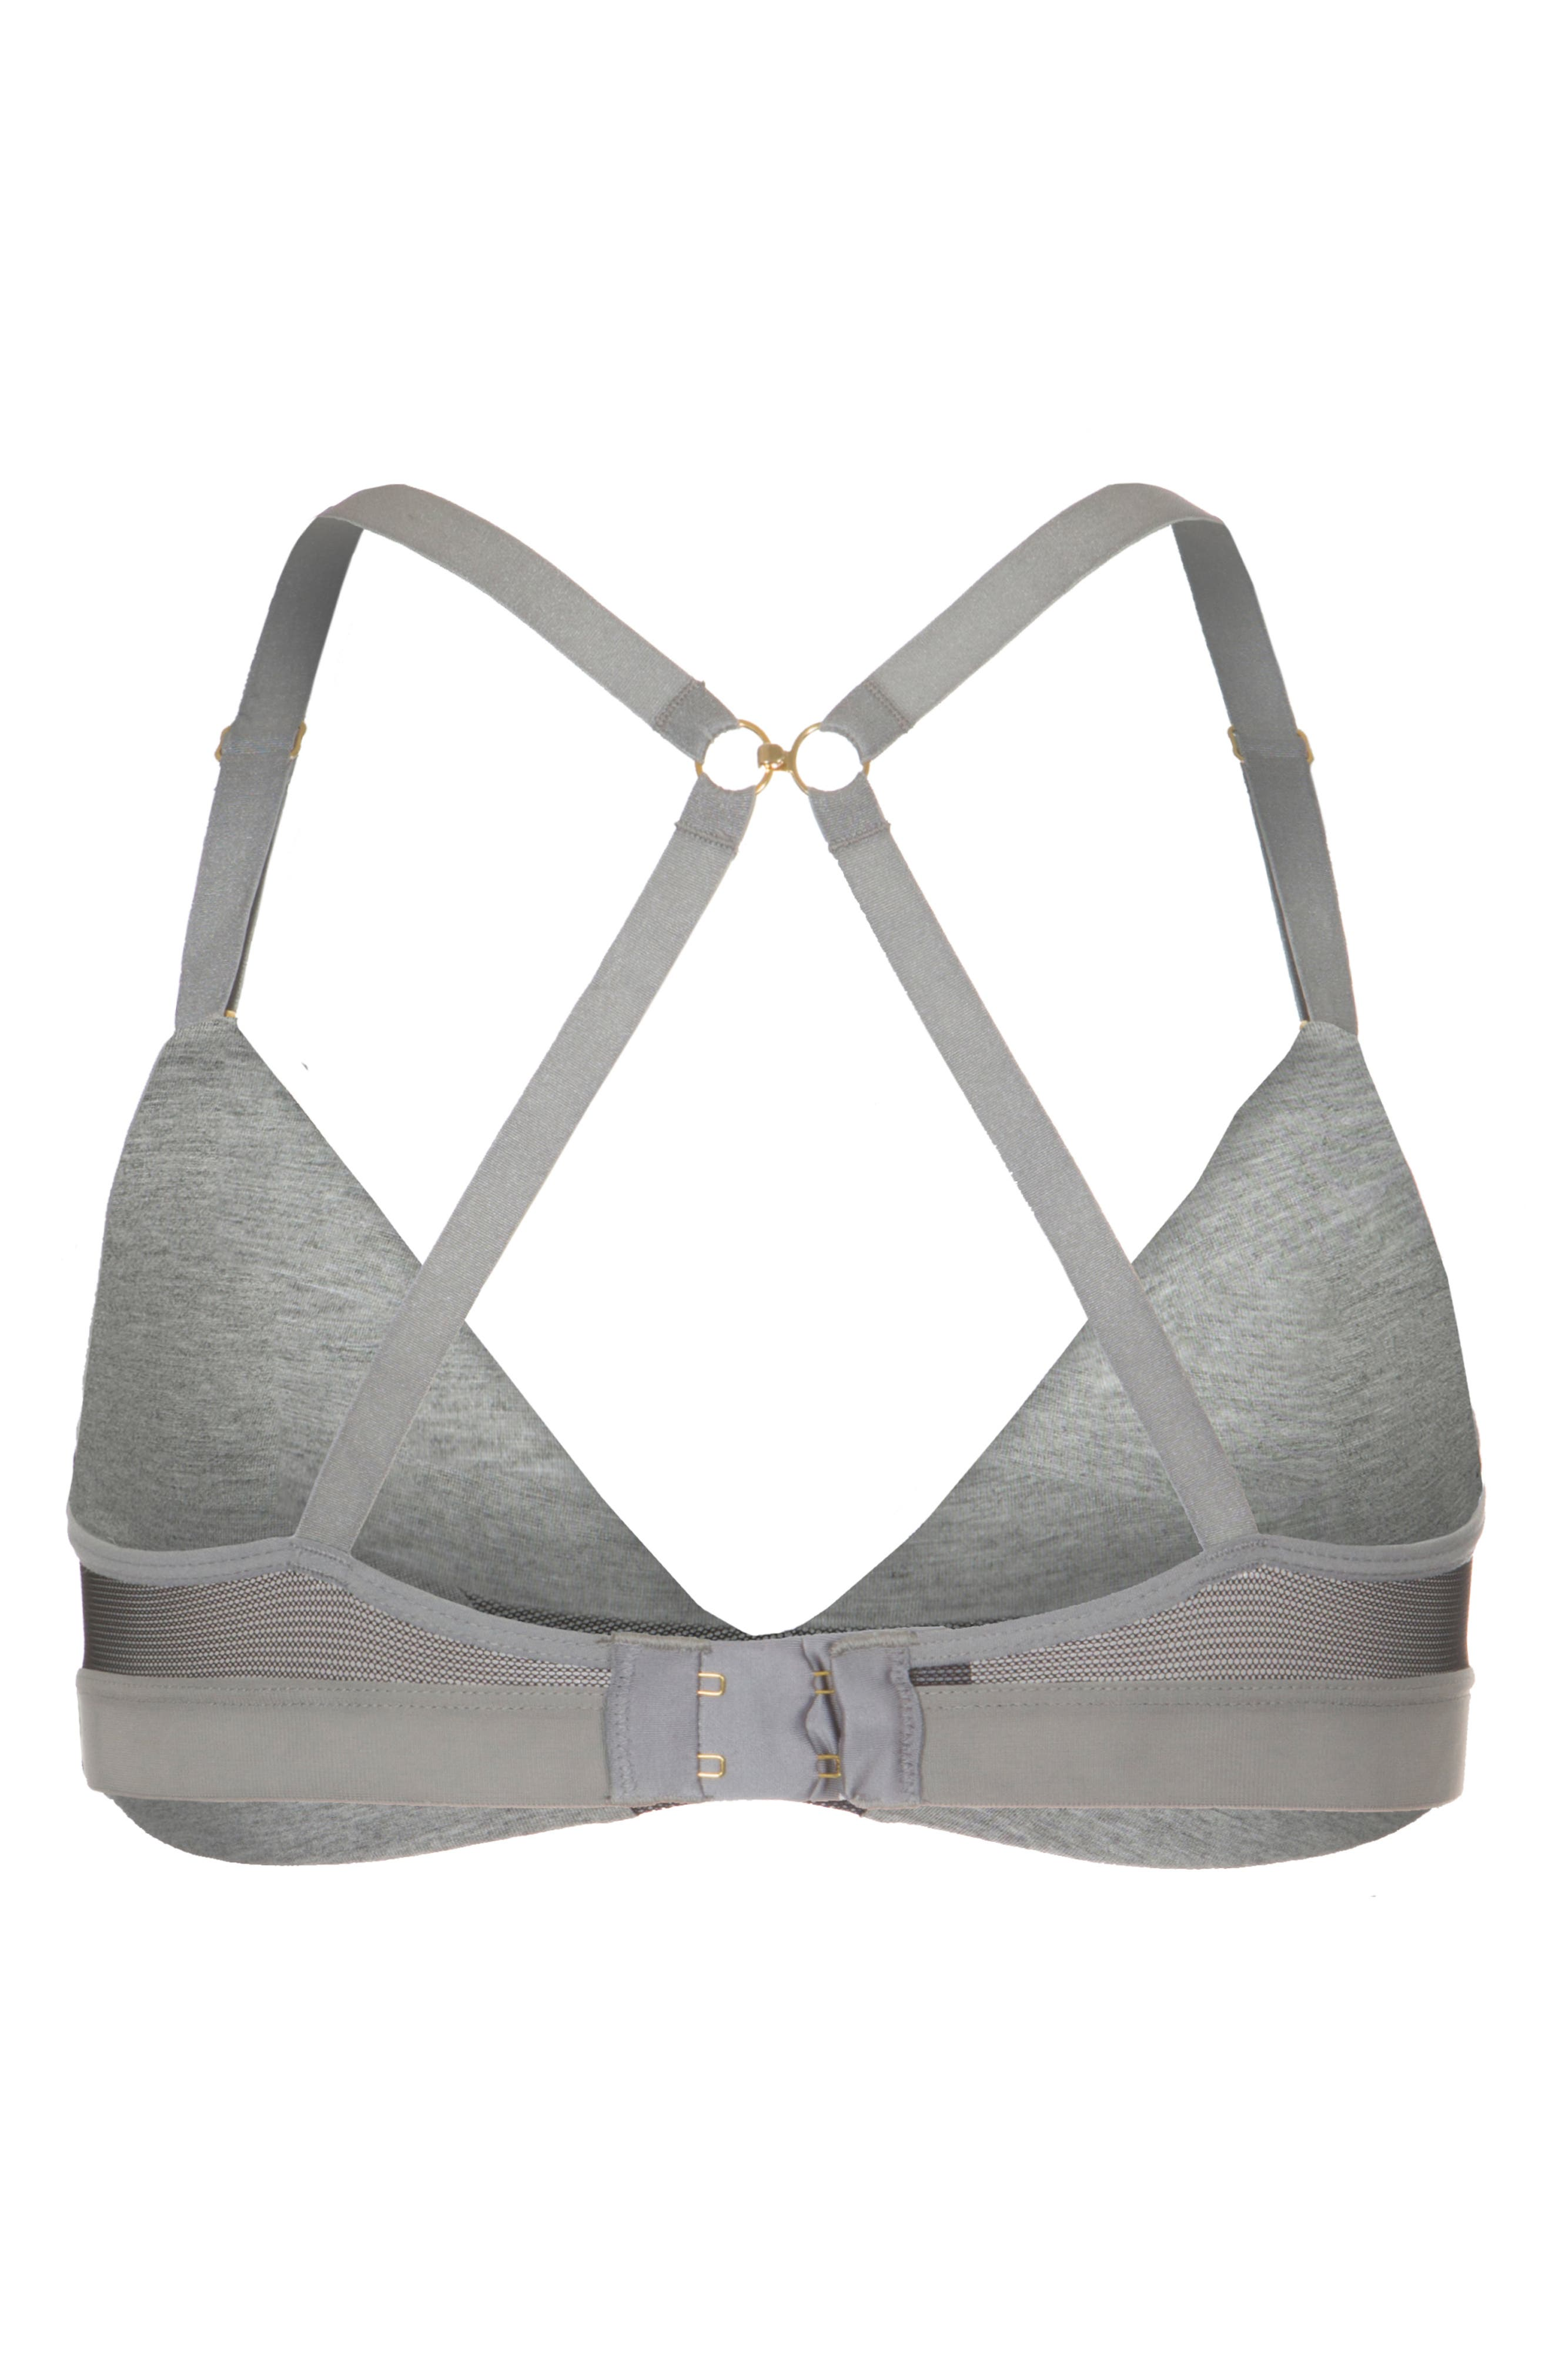 The All Day Deep-V No-Wire Colorblock Bra,                             Alternate thumbnail 4, color,                             HEATHER GREY JET BLACK